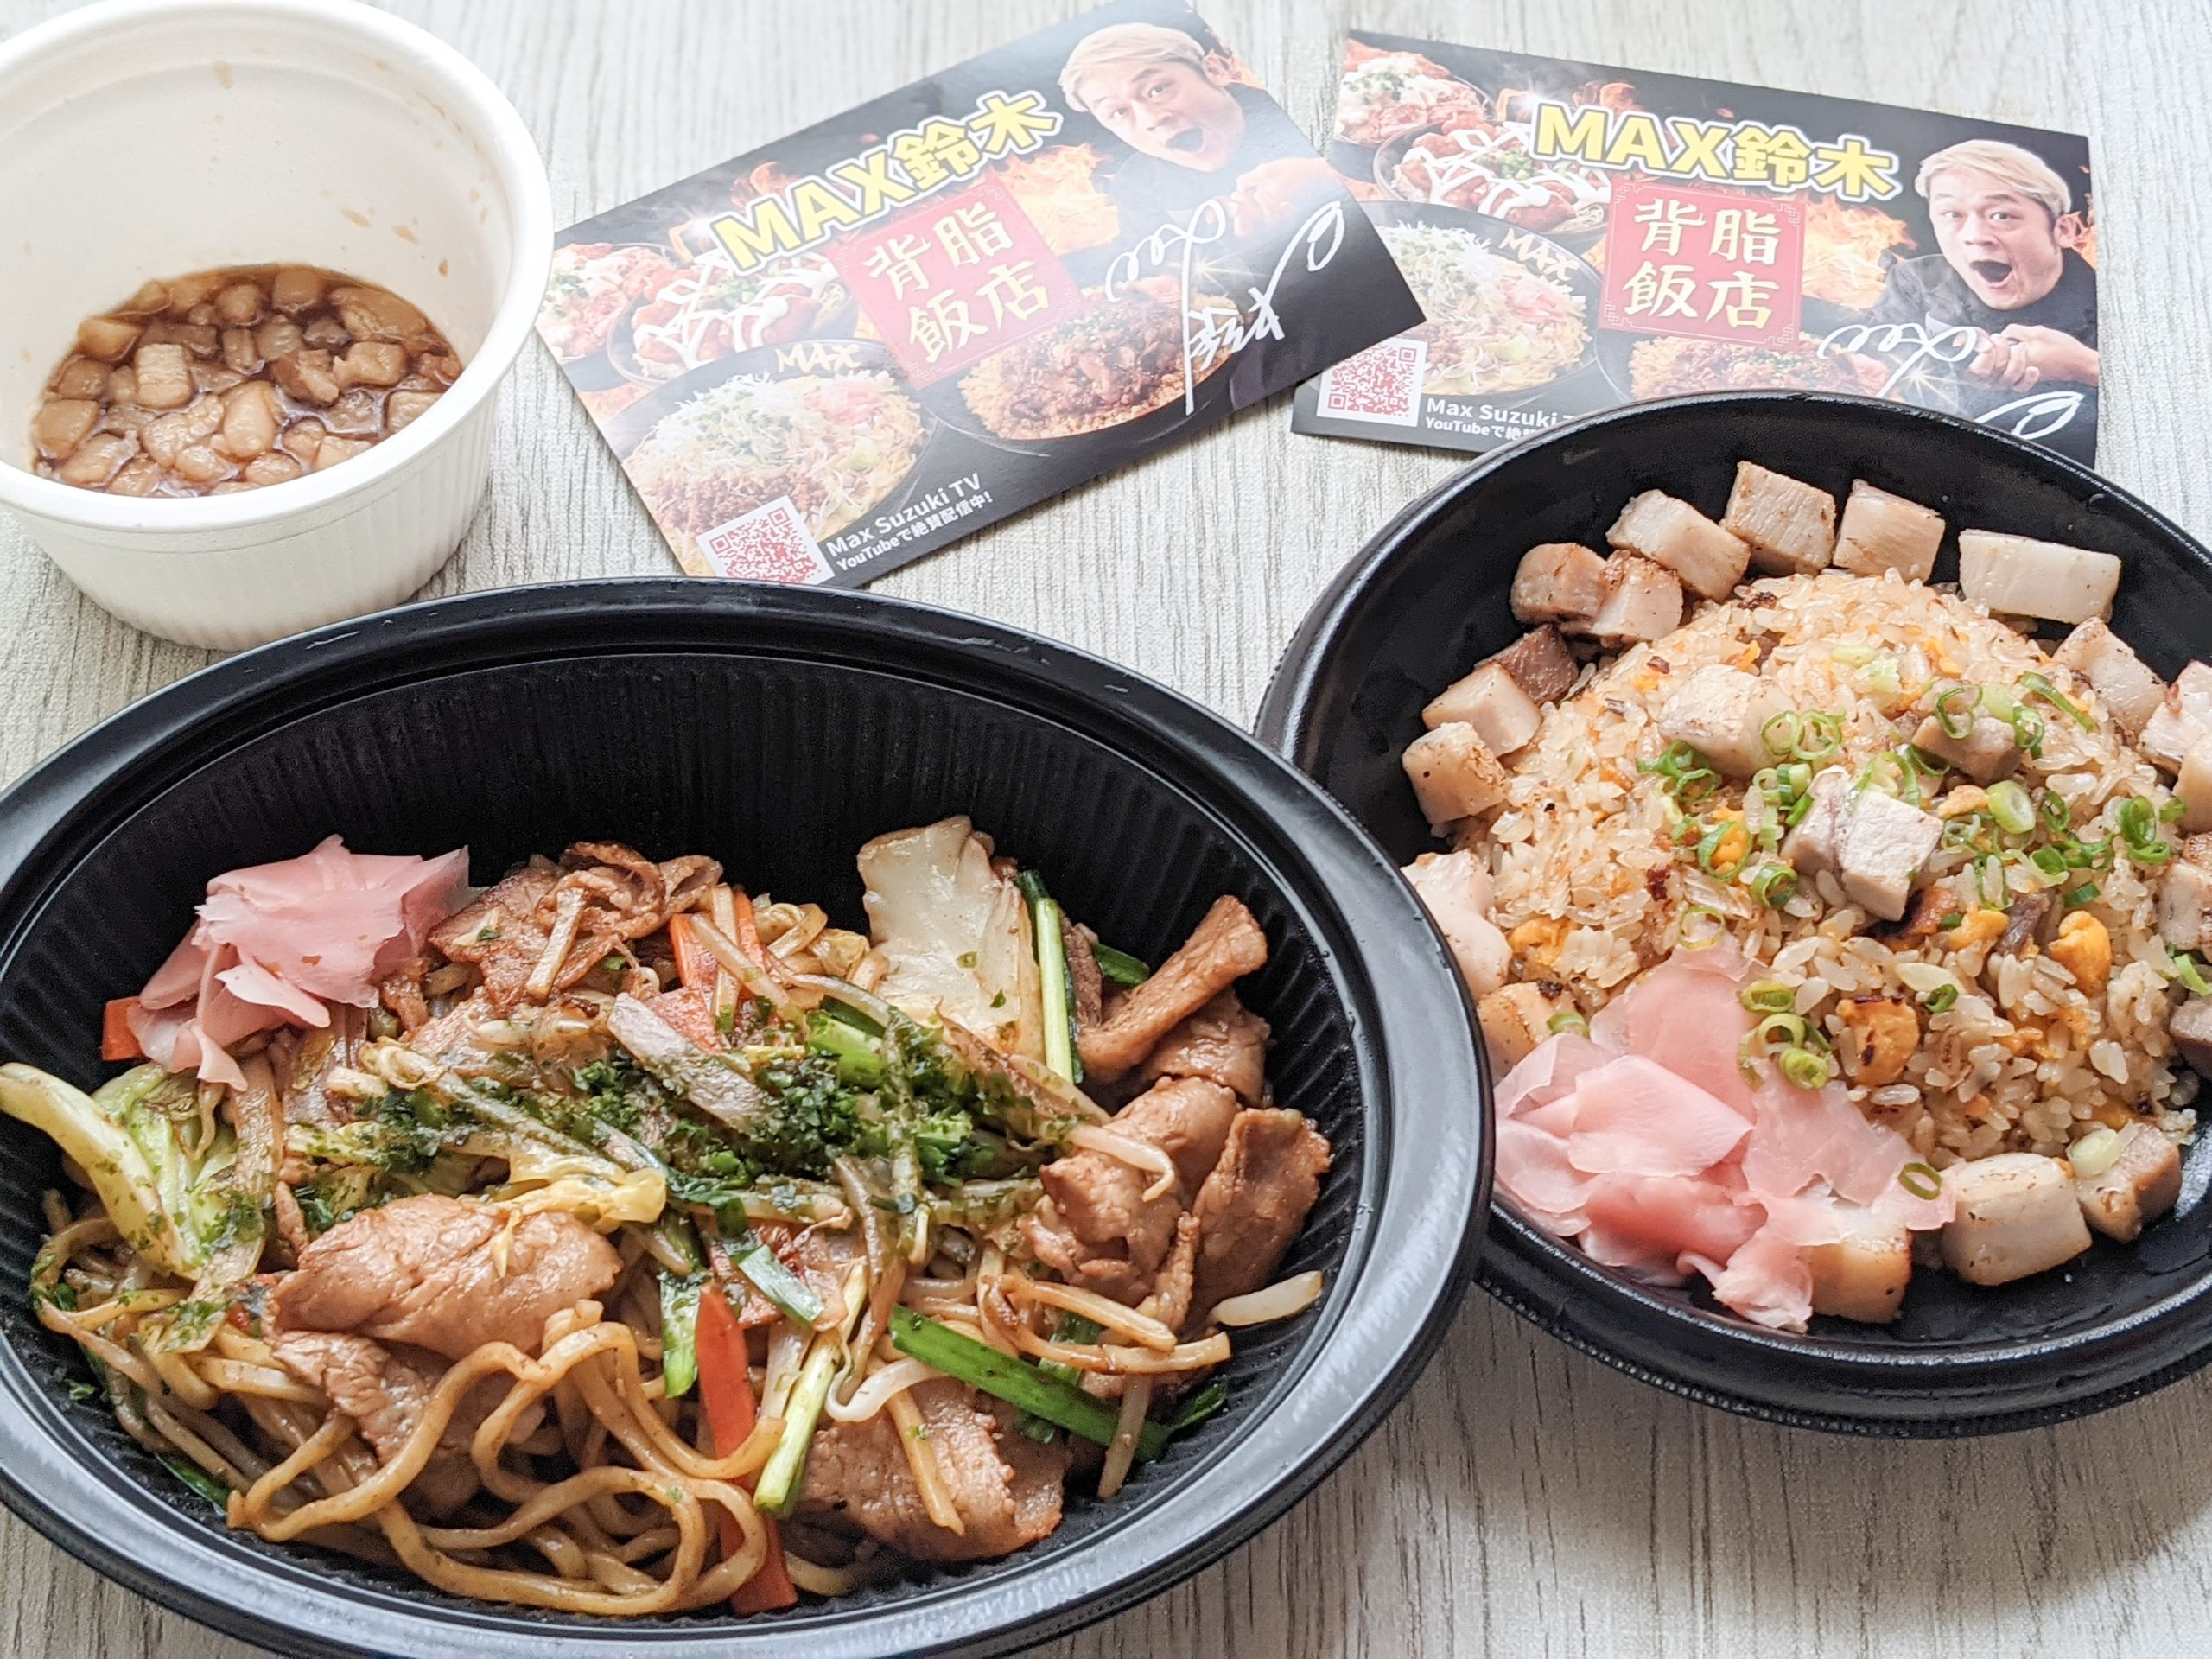 MAX鈴木の背脂飯店 背脂チャーハン感想